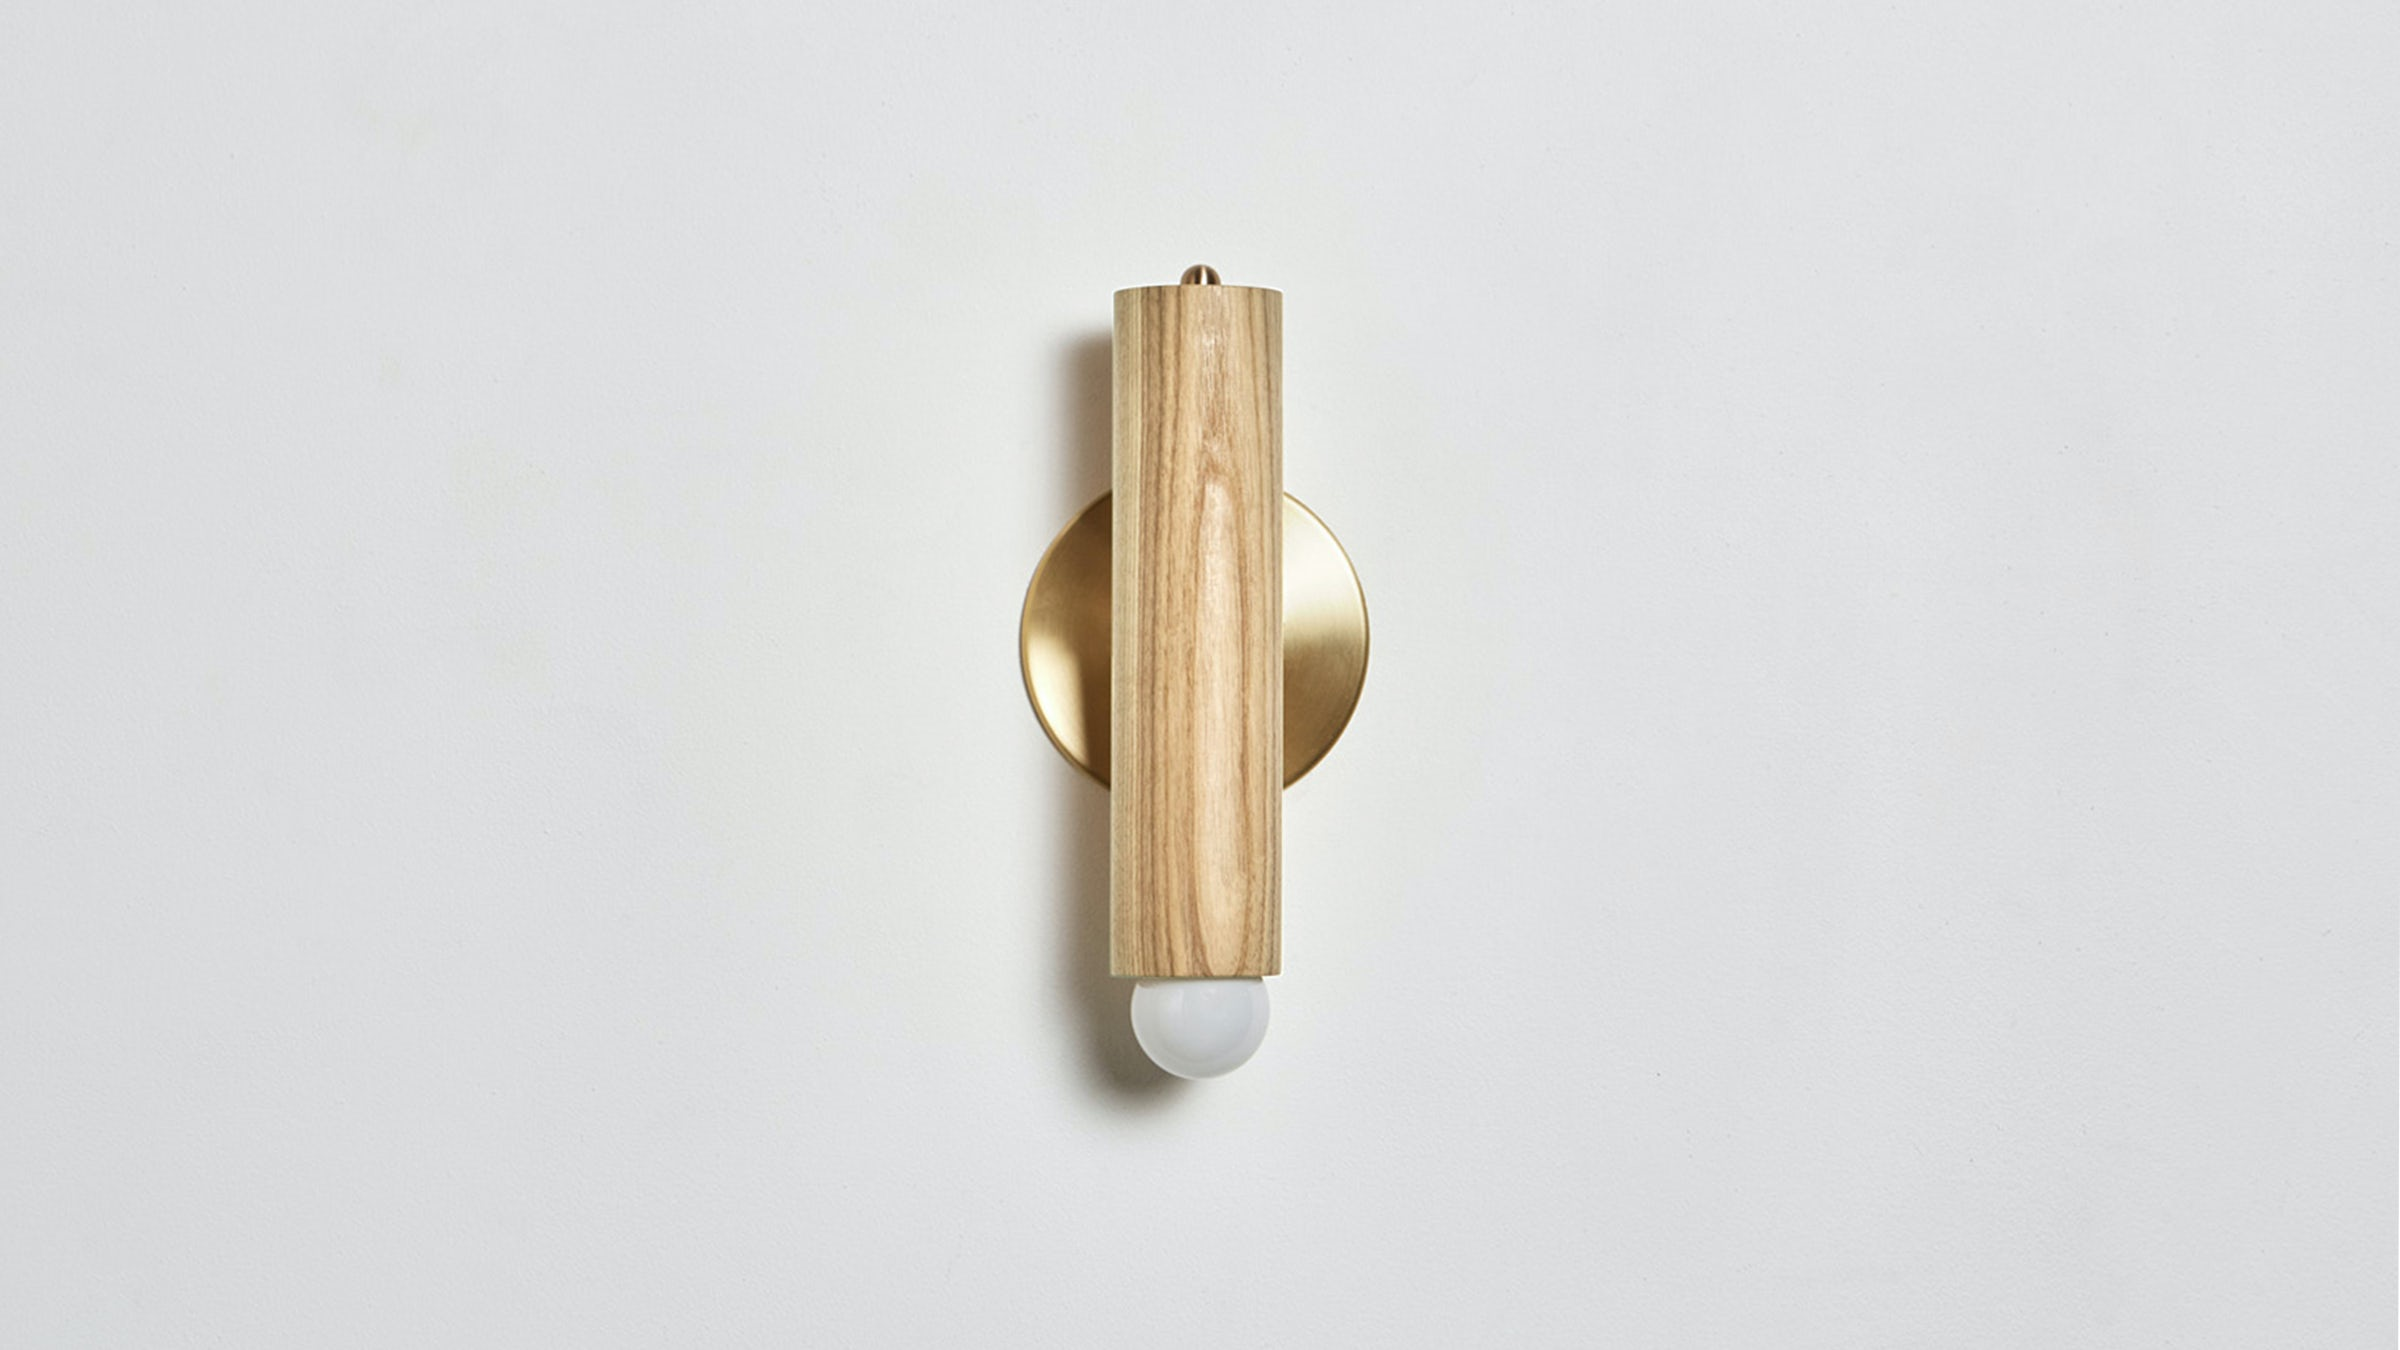 gallery image for Lodge Sconce